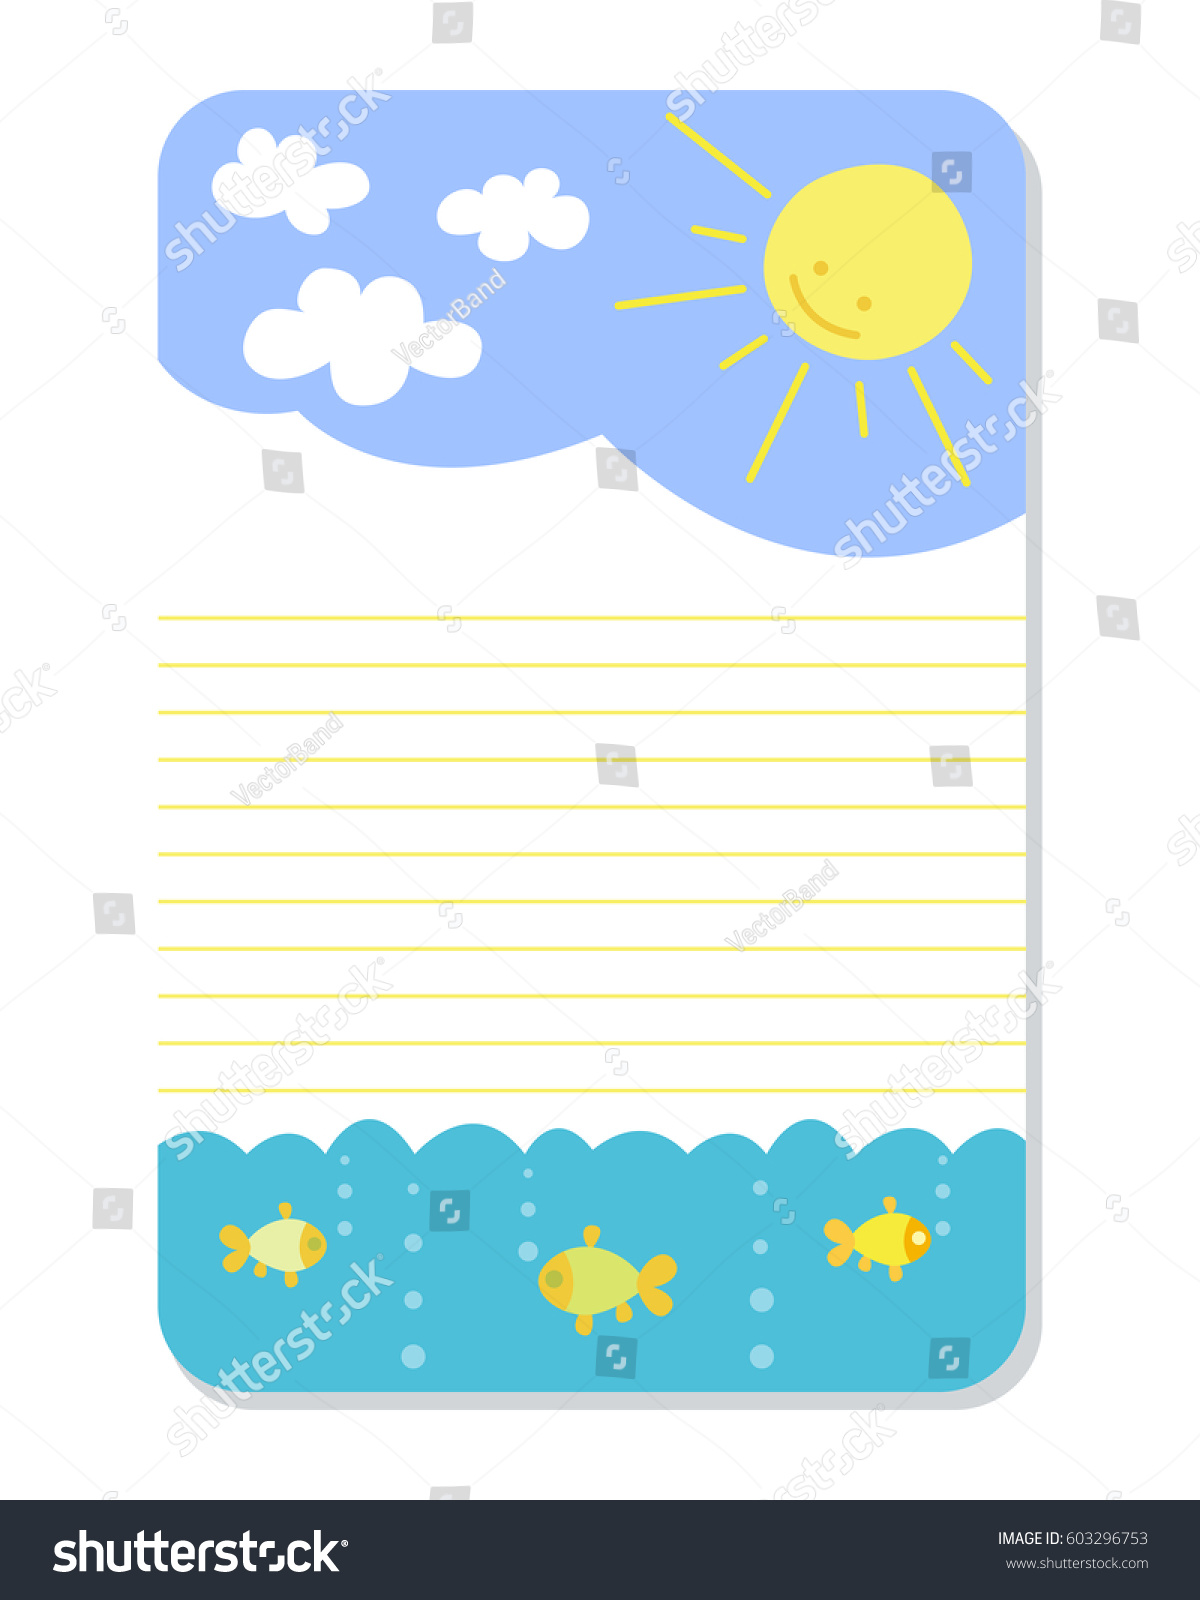 Cute Hand Drawn Doodle Birthday Party Stock Vector